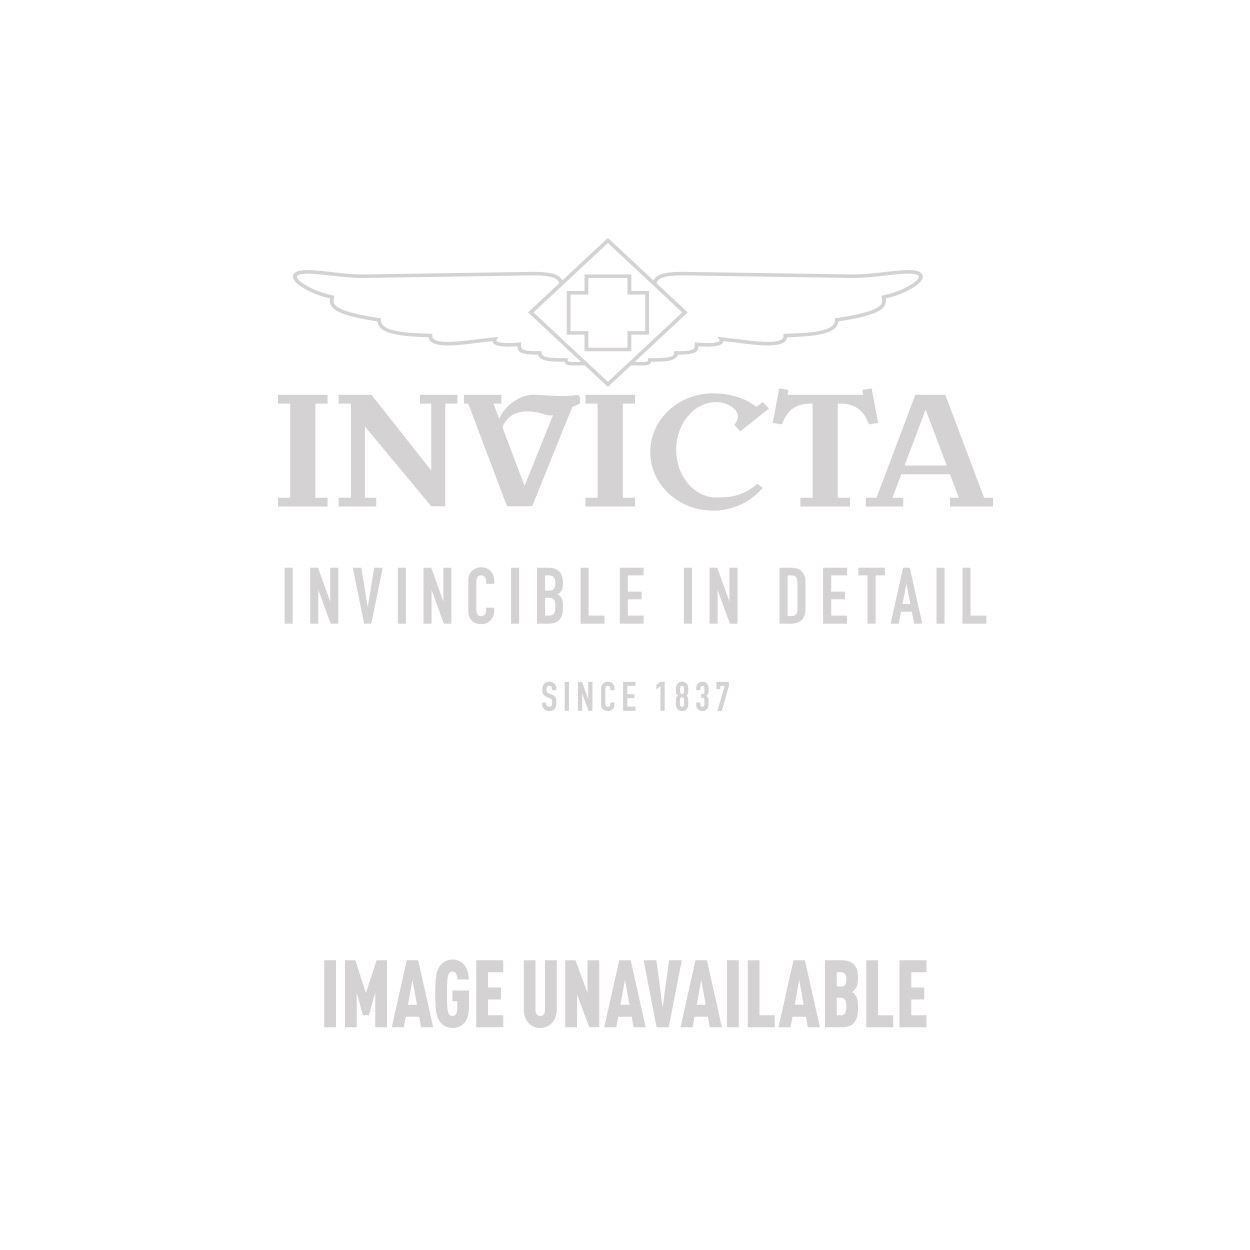 Invicta S. Coifman Swiss Movement Quartz Watch - Stainless Steel case with Black tone Leather band - Model SC0334